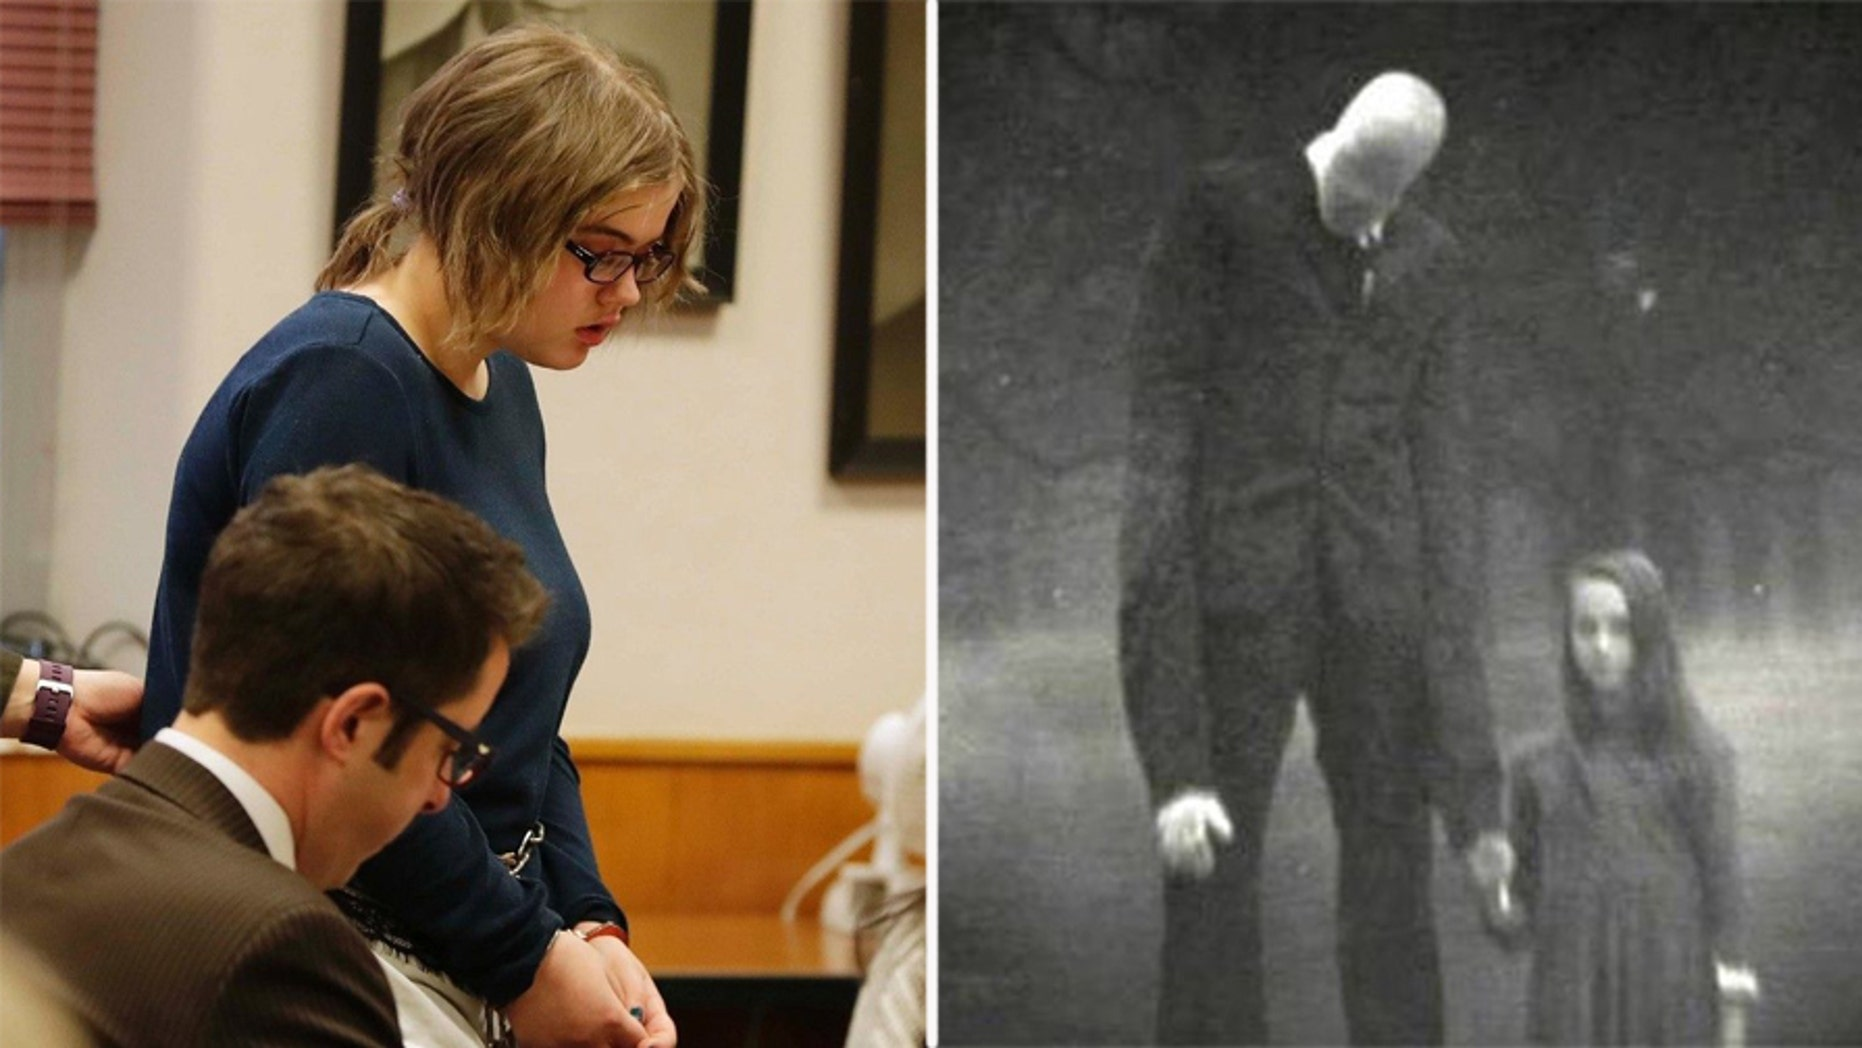 Morgan Geyser, 15, left, appears before sentencing for Waukesha County Circuit Judge Michael Bohren on Thursday. Geyser is one of the two girls who tried to kill a classmate with a knife to appease fictional horror character Slender Man, right.